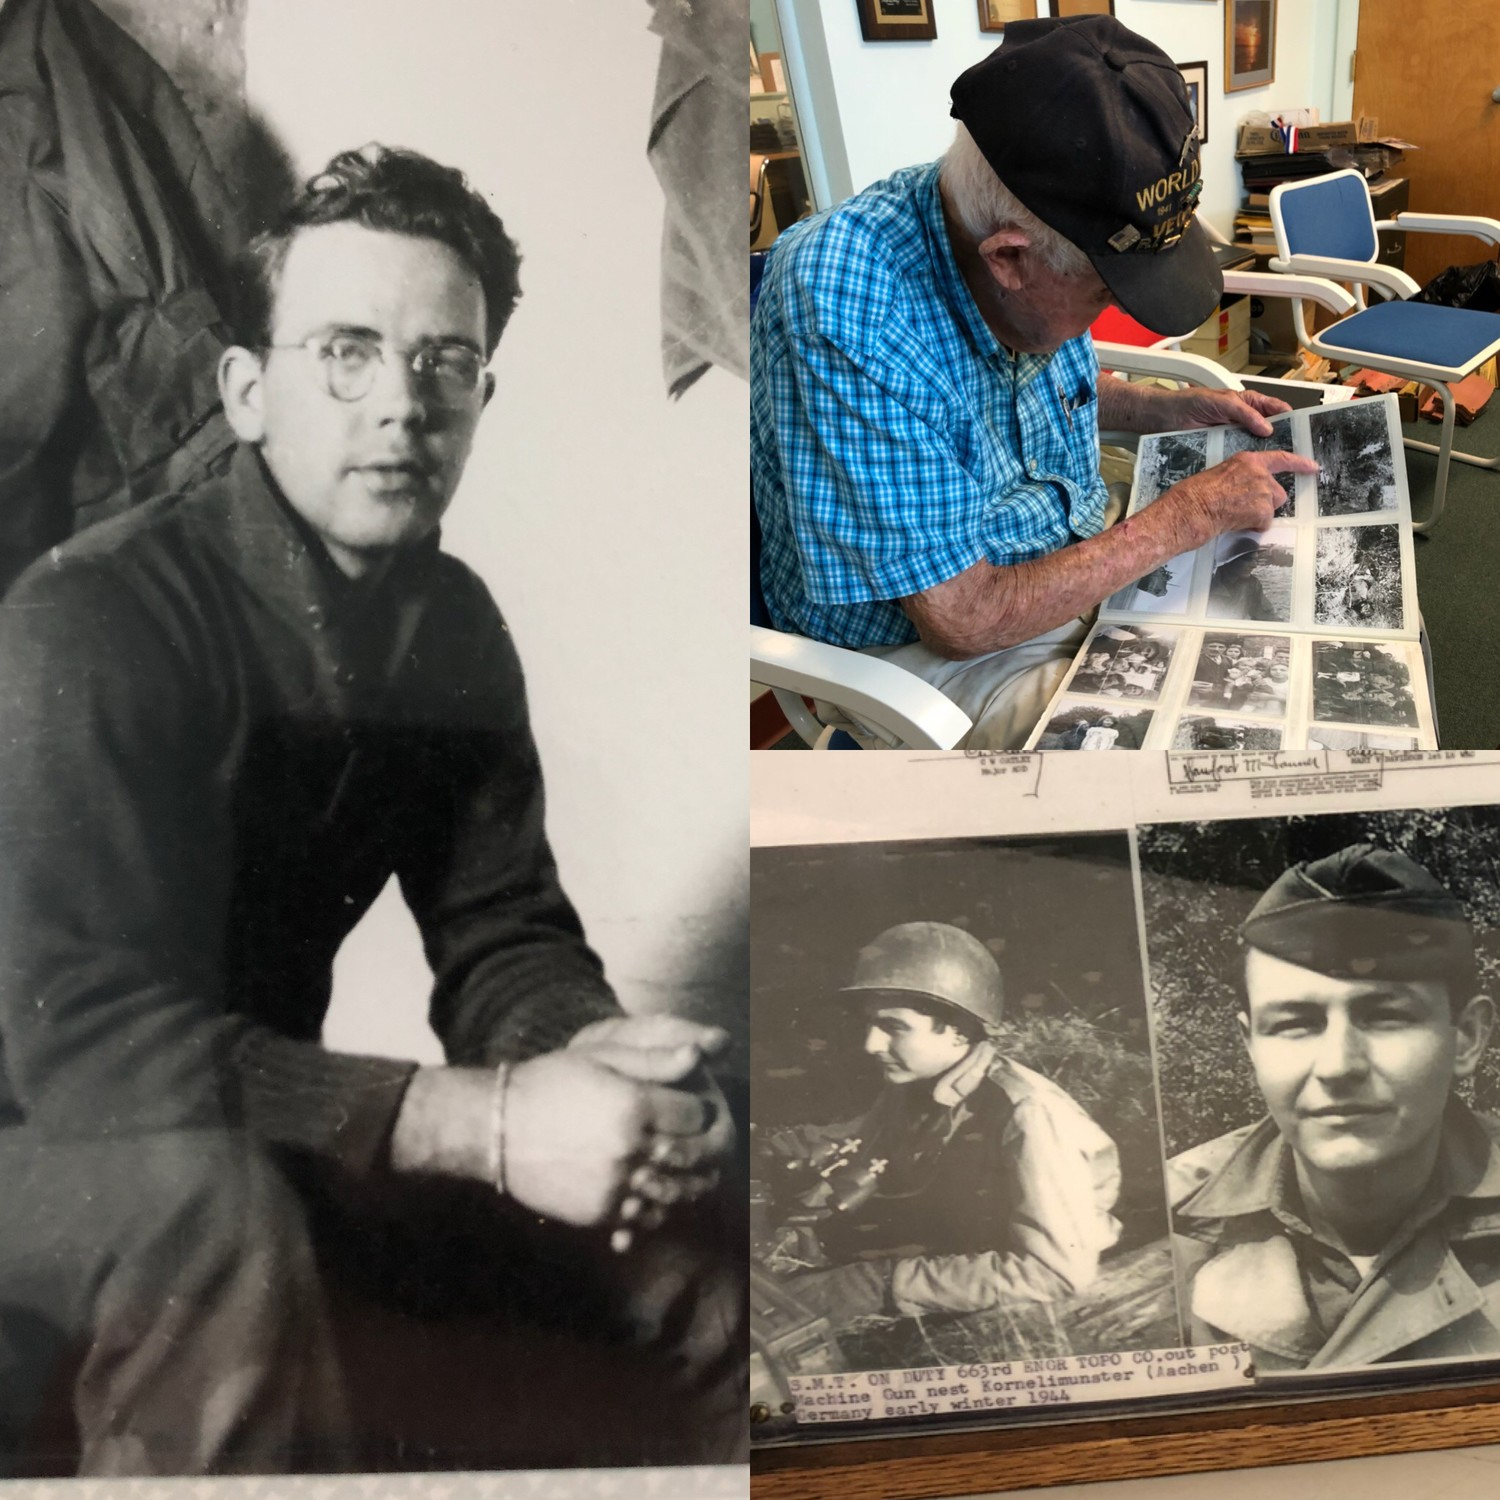 Clockwise: Edward Hayes Jr., who was profiled in a piece at the end of August by Pilgrim High senior Marcus Prezioso (his great-grandfather); Sanford M. Tanner, 97 years old, showing photos he took while deployed with Hayes during World War II; Sanford Tanner at the time of the war, around 22 years of age.